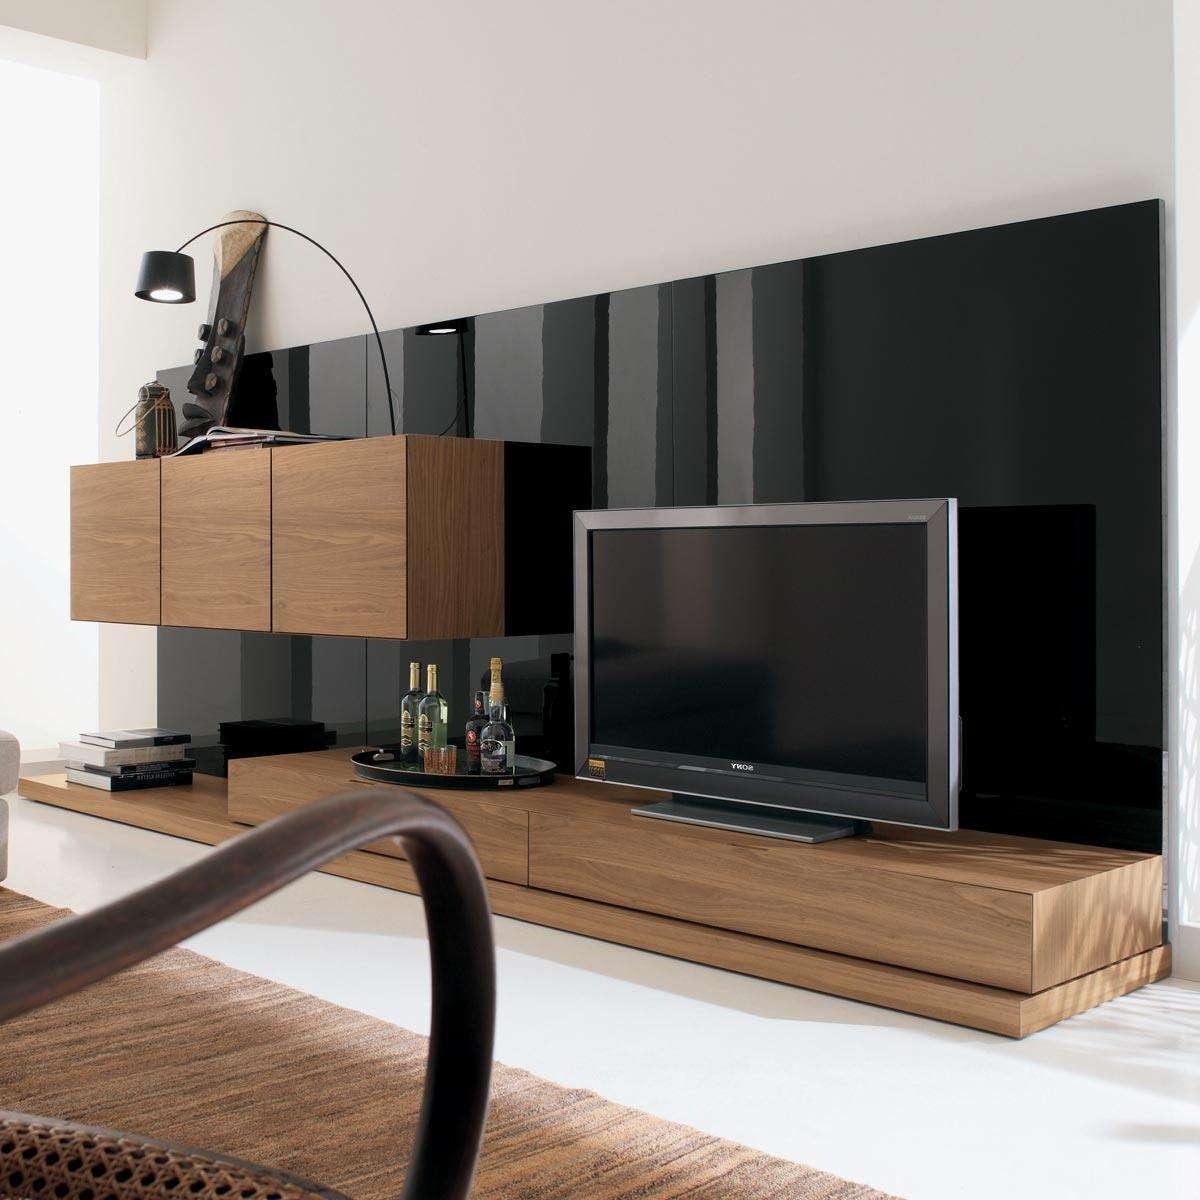 Modern Nature Wood Big Screen Tv Stand Wall Mounted Living Room Throughout Long Wood Tv Stands (View 3 of 15)